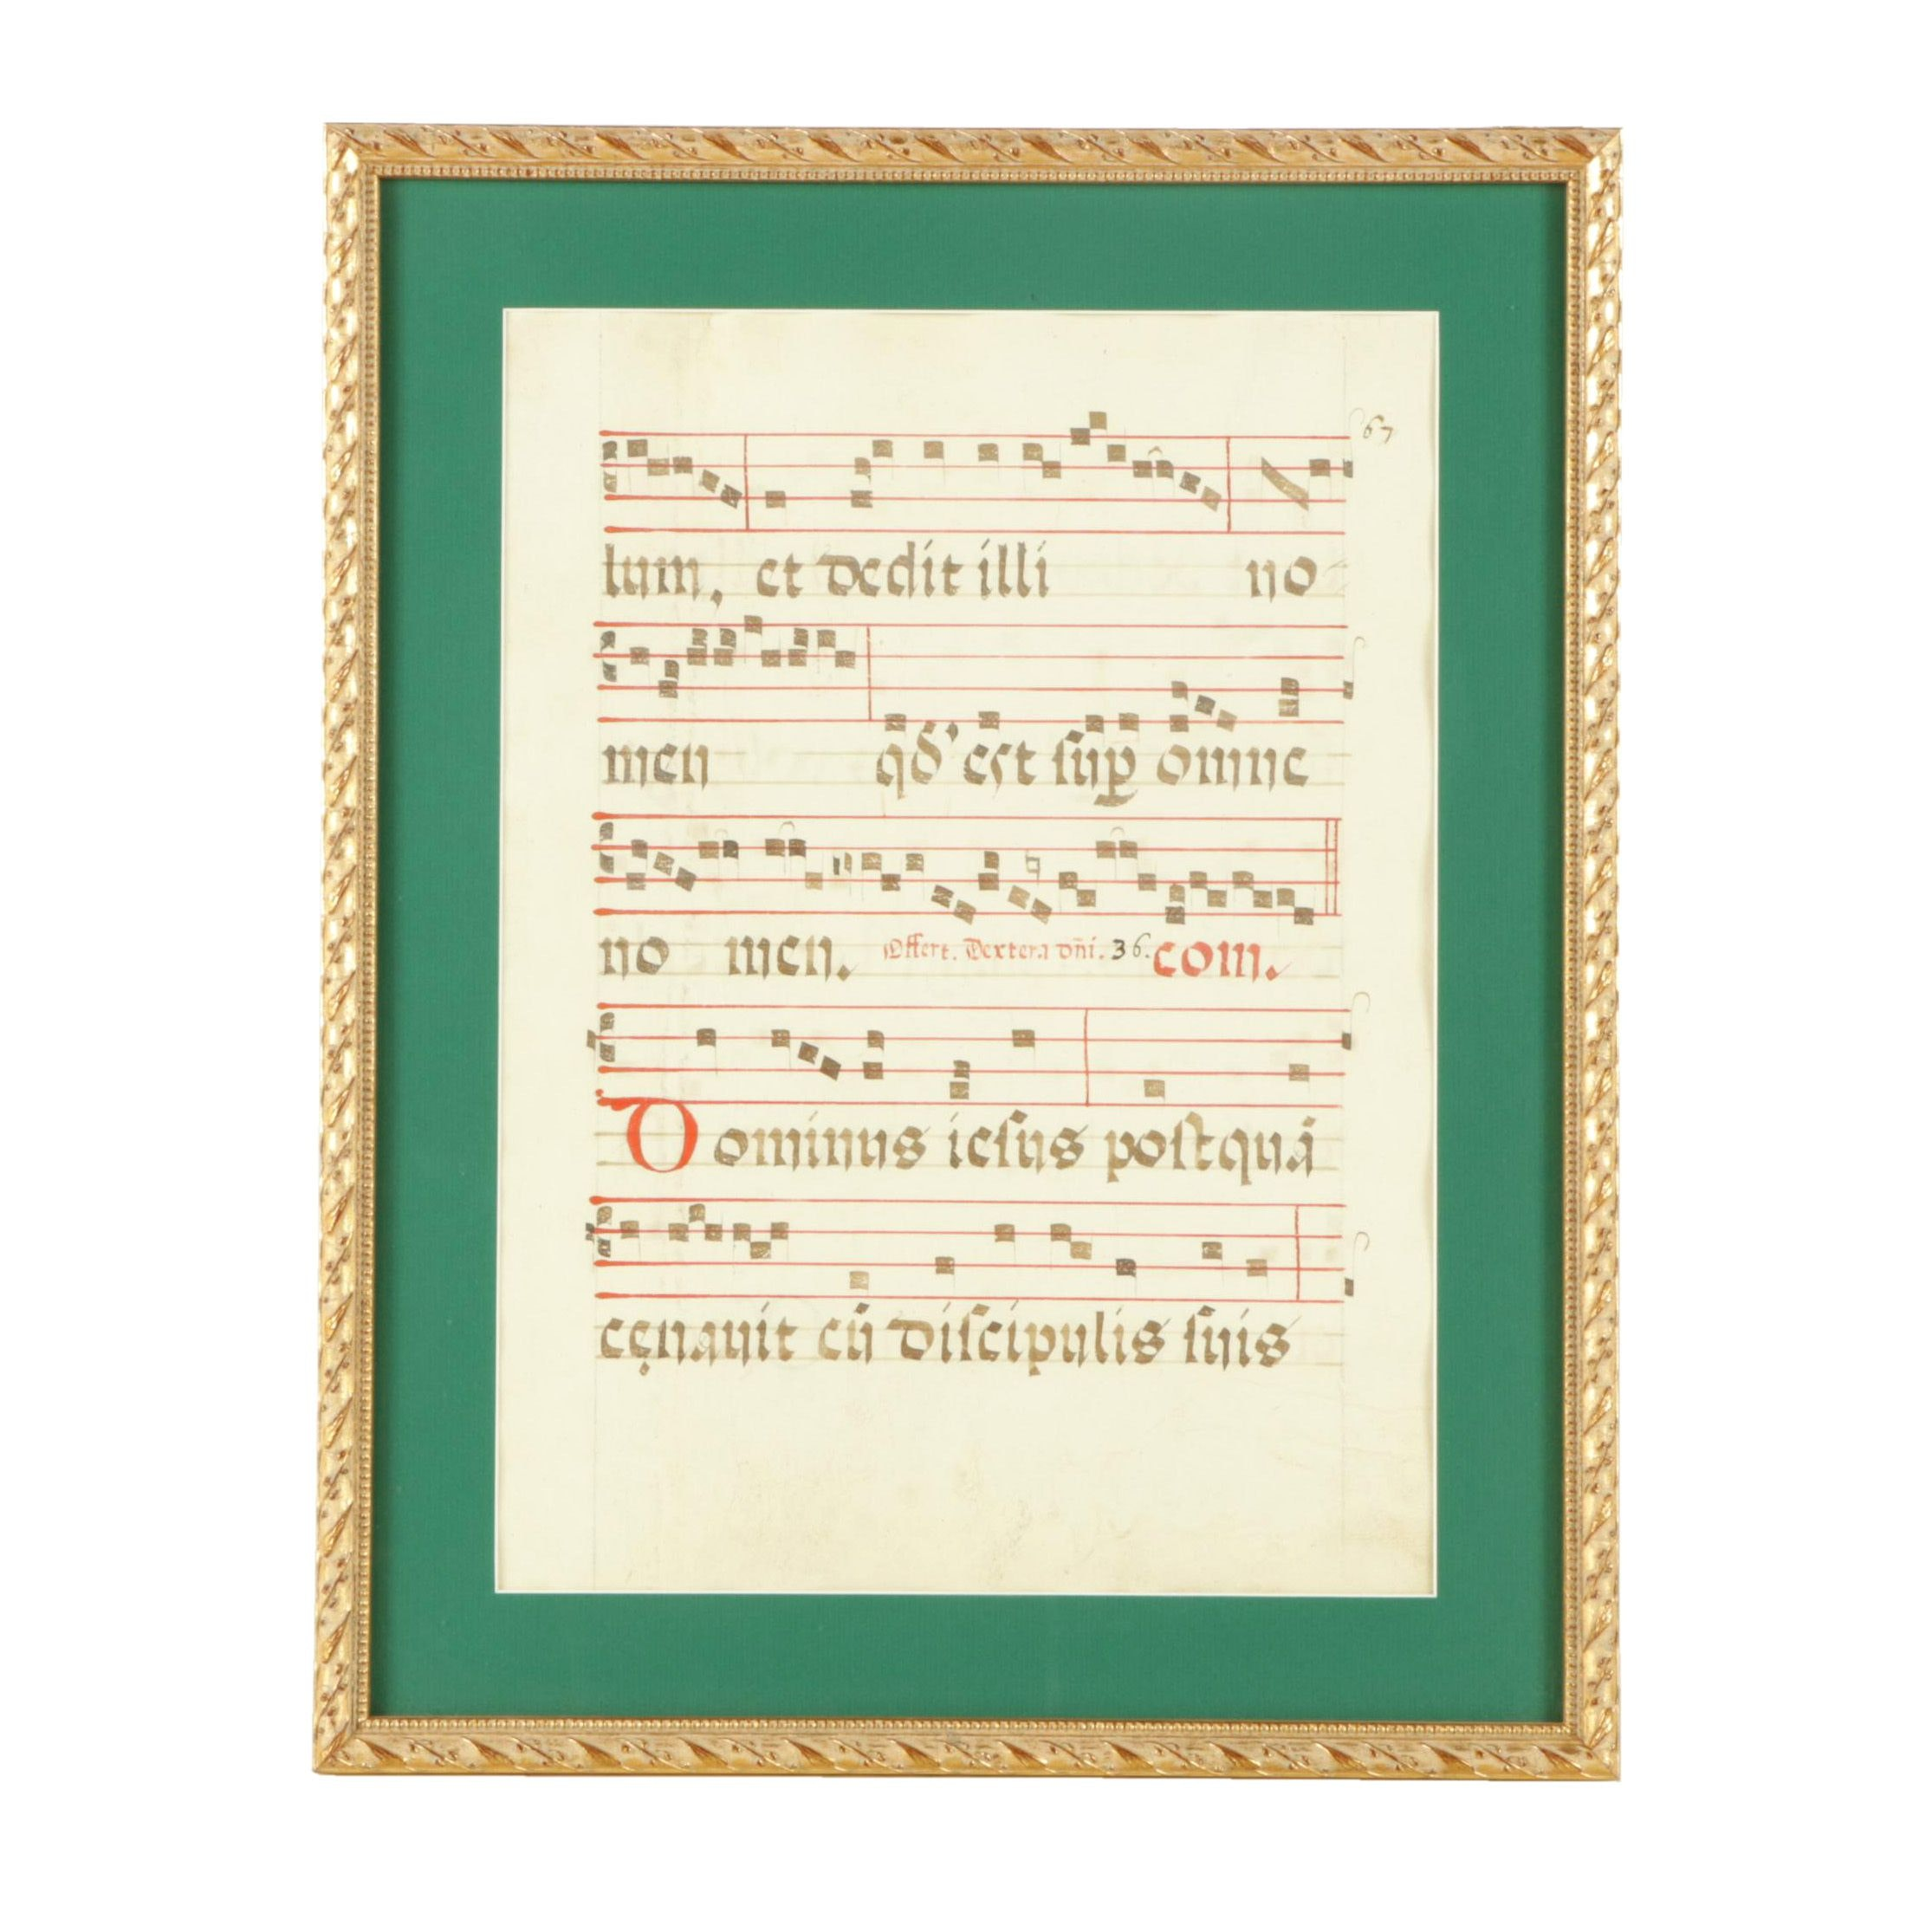 Hand-Painted Latin Sheet Music Manuscript Folio